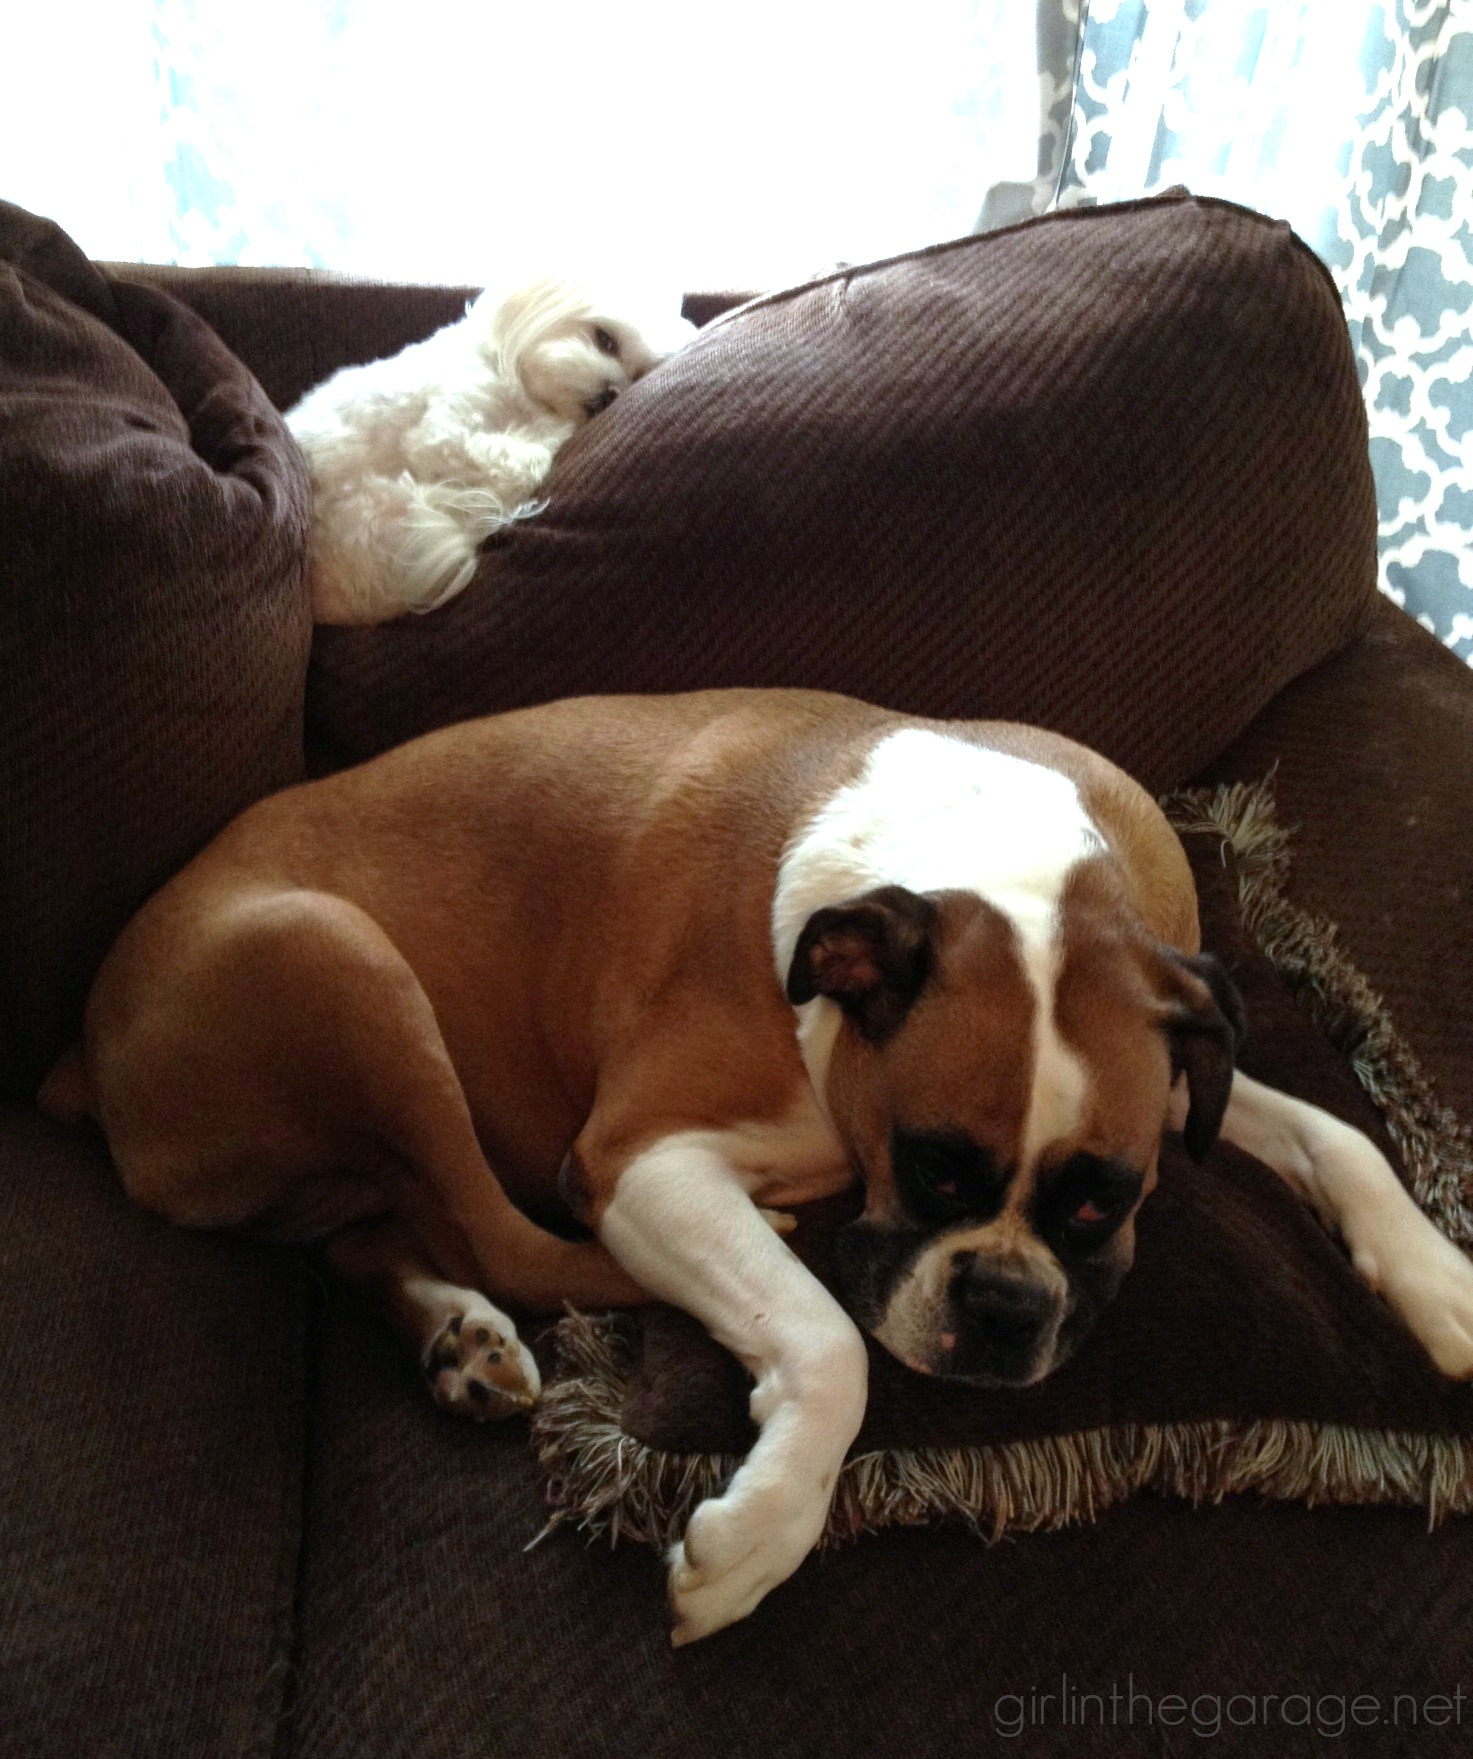 Remembering our sweet boxer Abby. Girl in the Garage